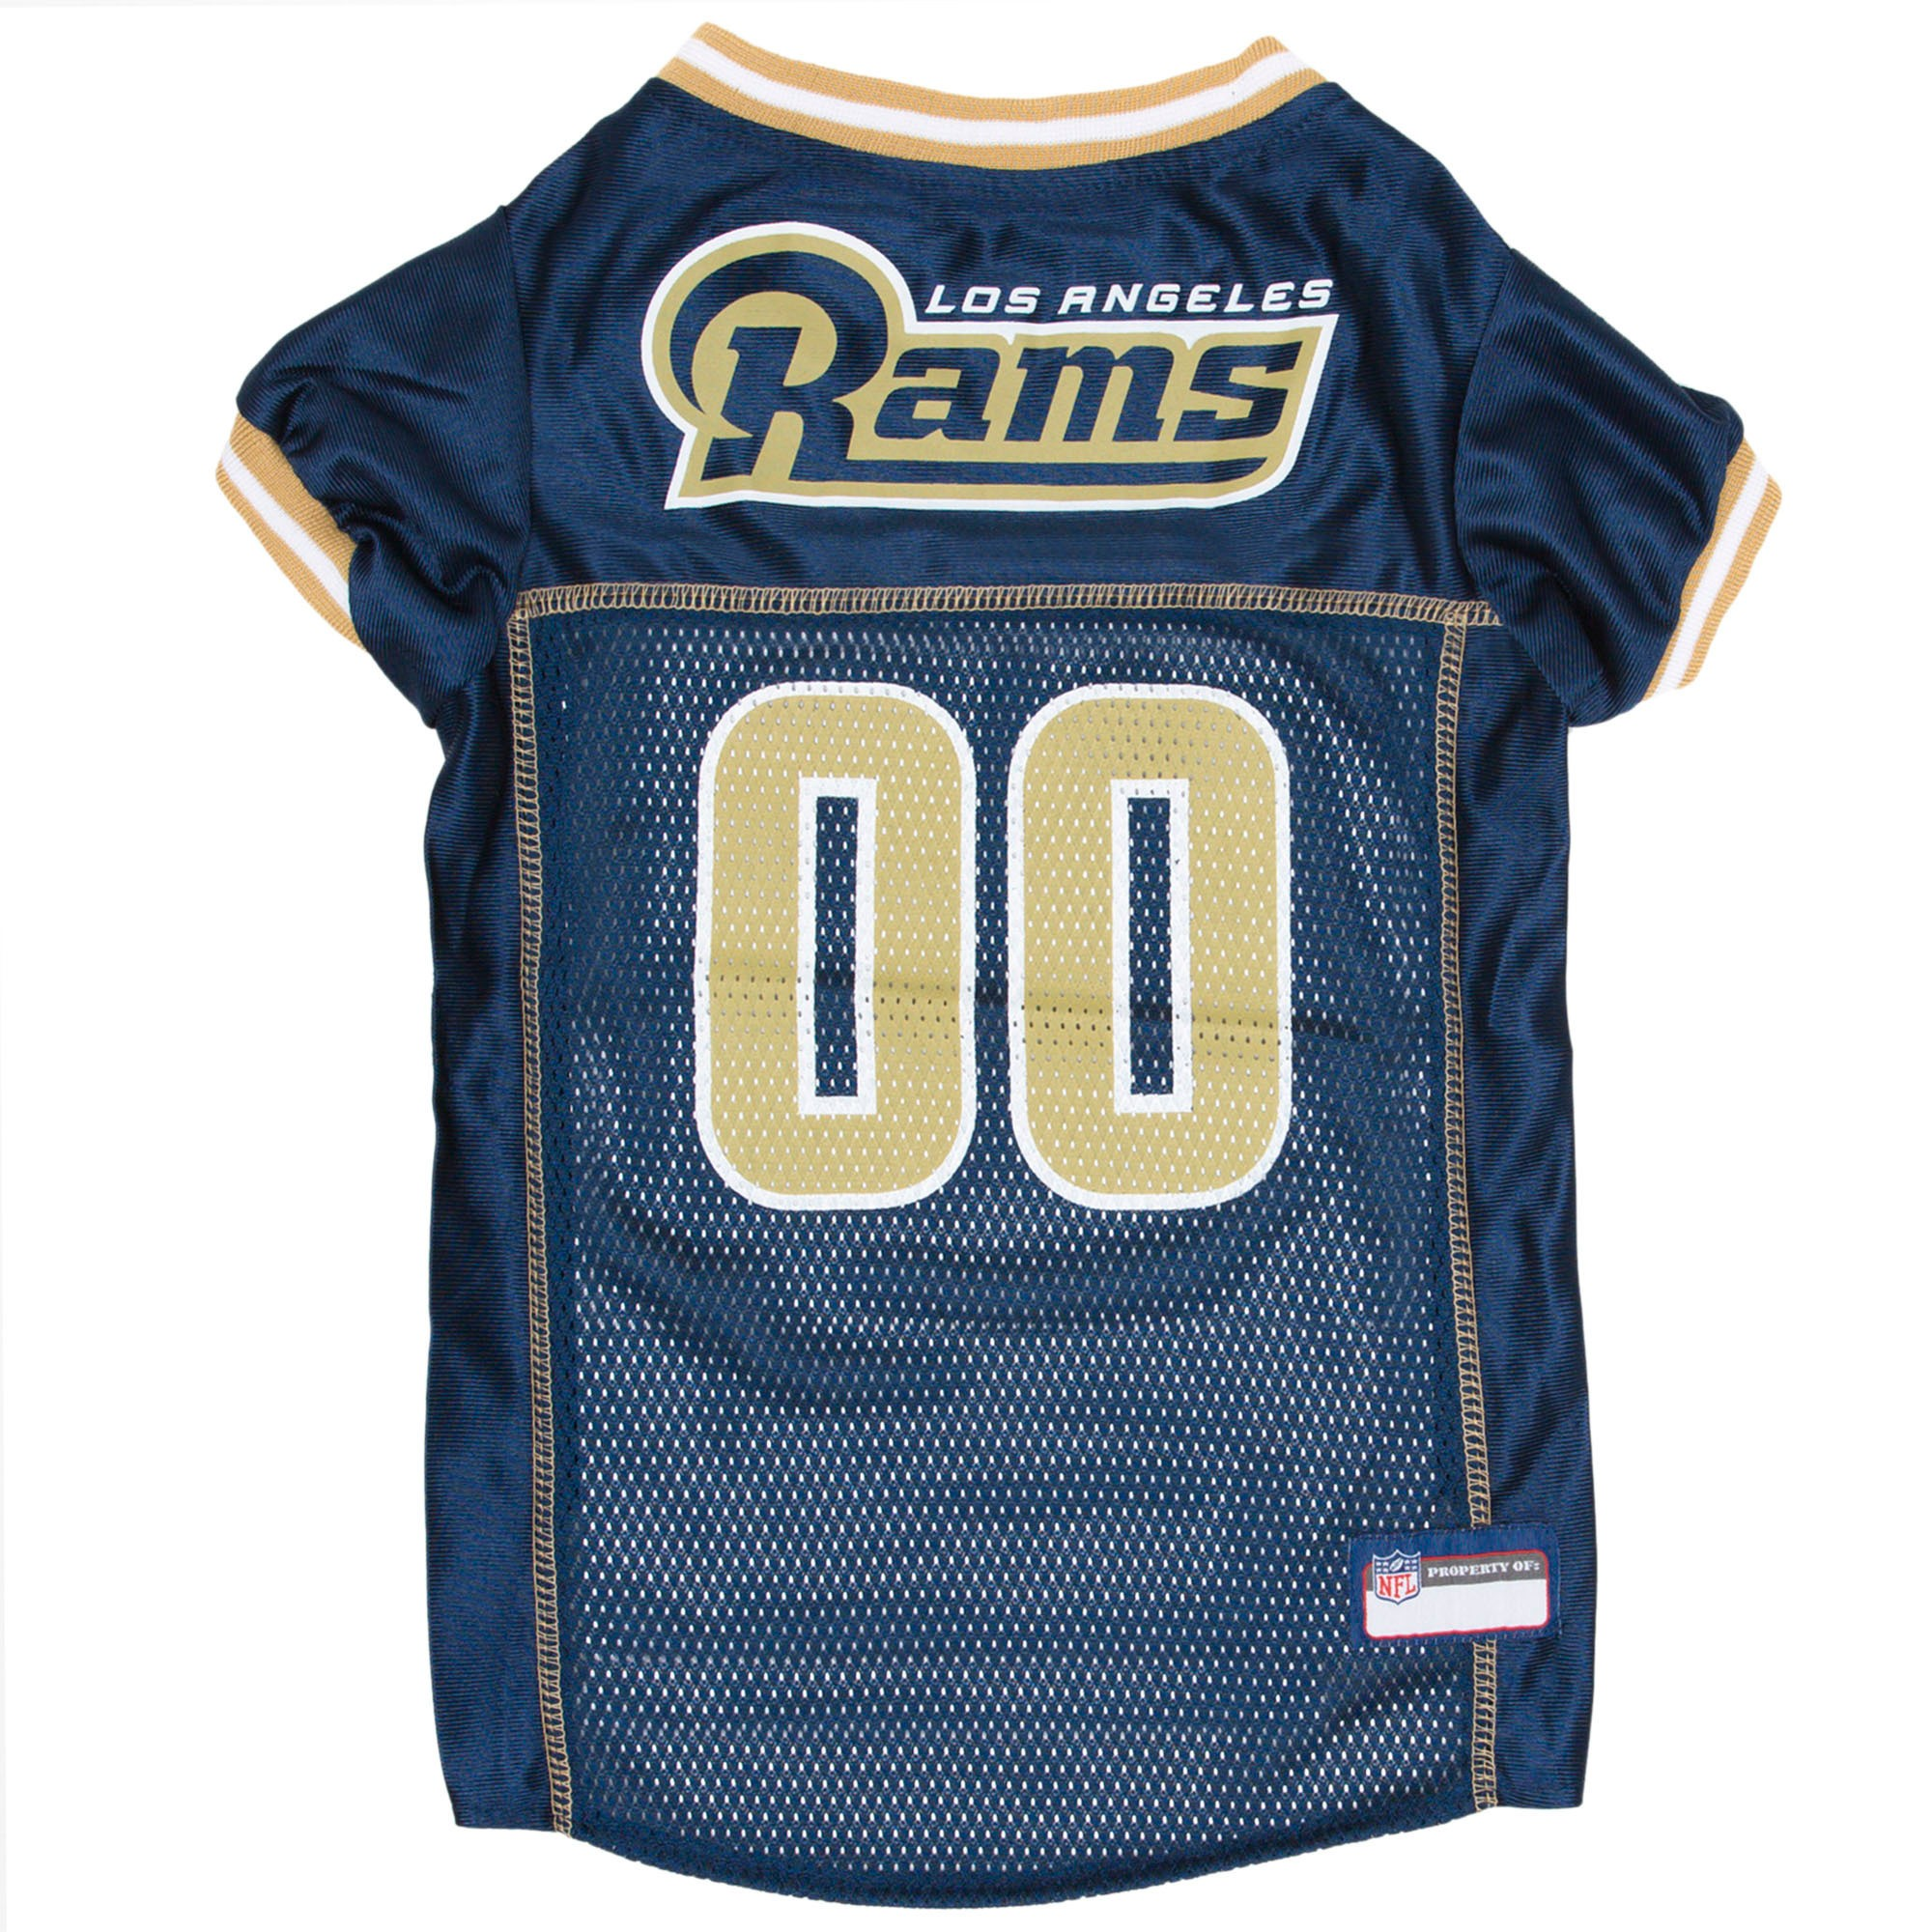 54eac85e3ee Los Angeles Rams Pets First Mesh Pet Football Jersey - Navy Xxl ...